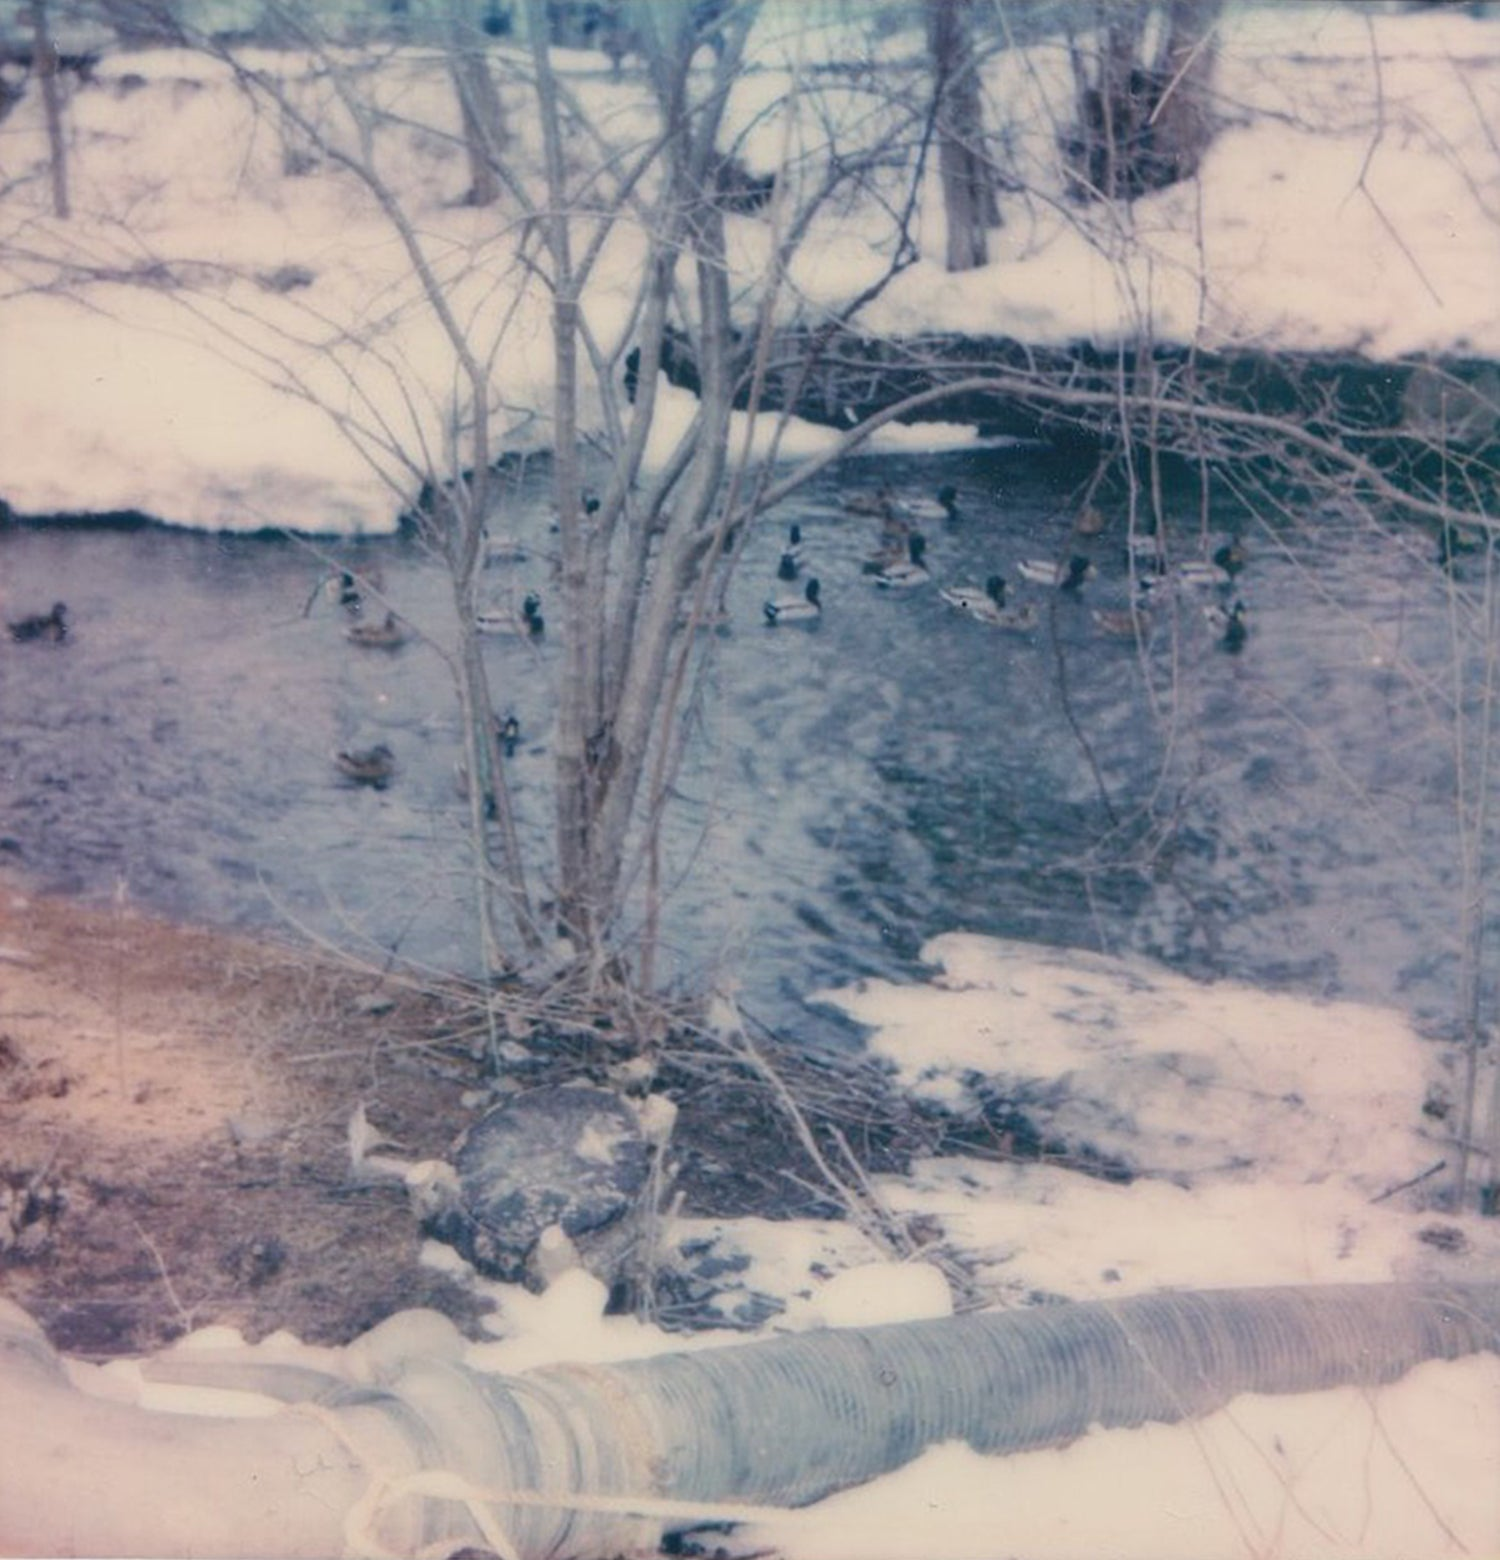 winter ducks - 5x5.2 / No Frame / No Mat